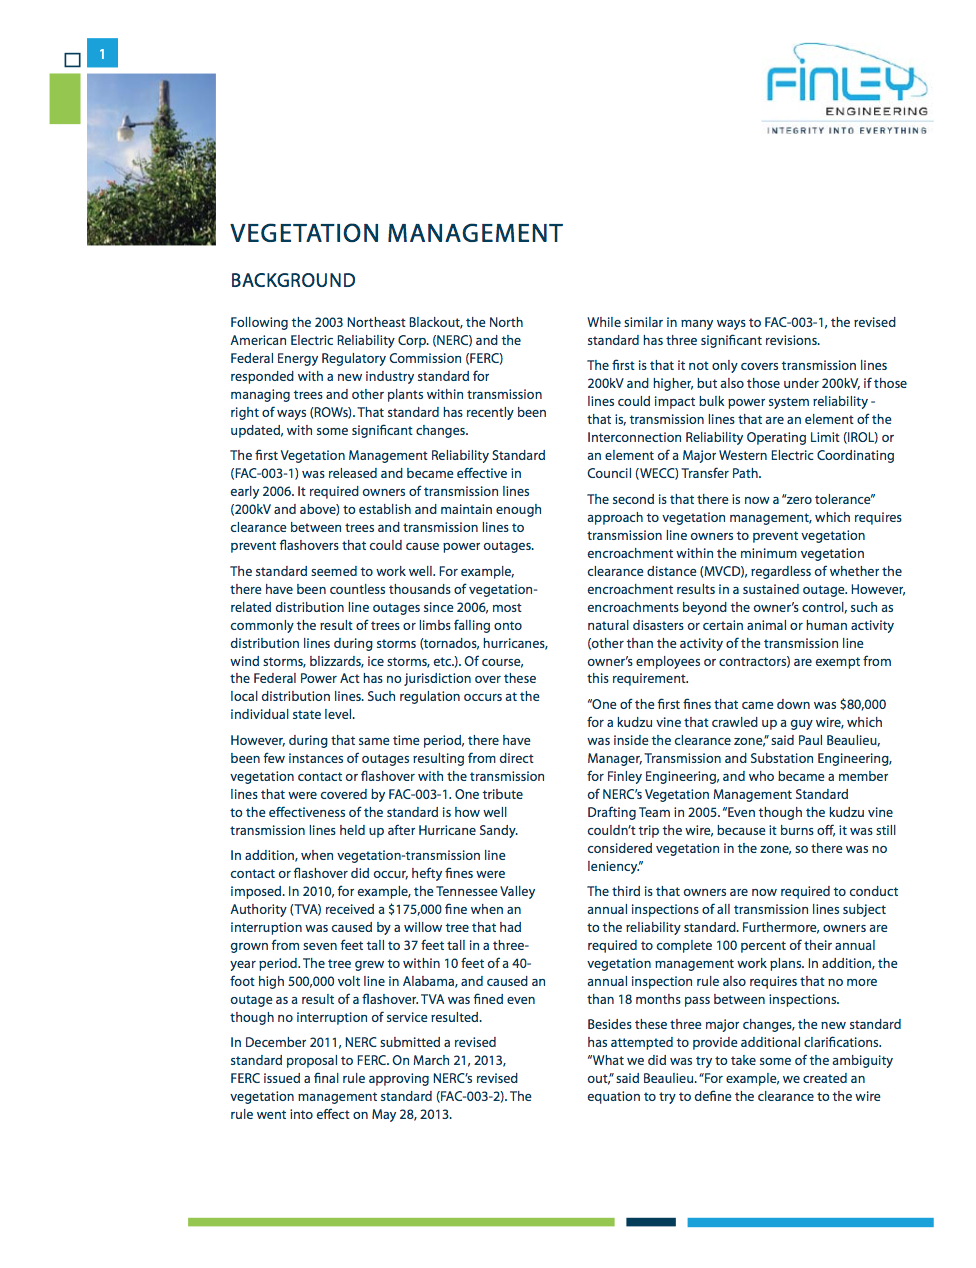 vegetation-management